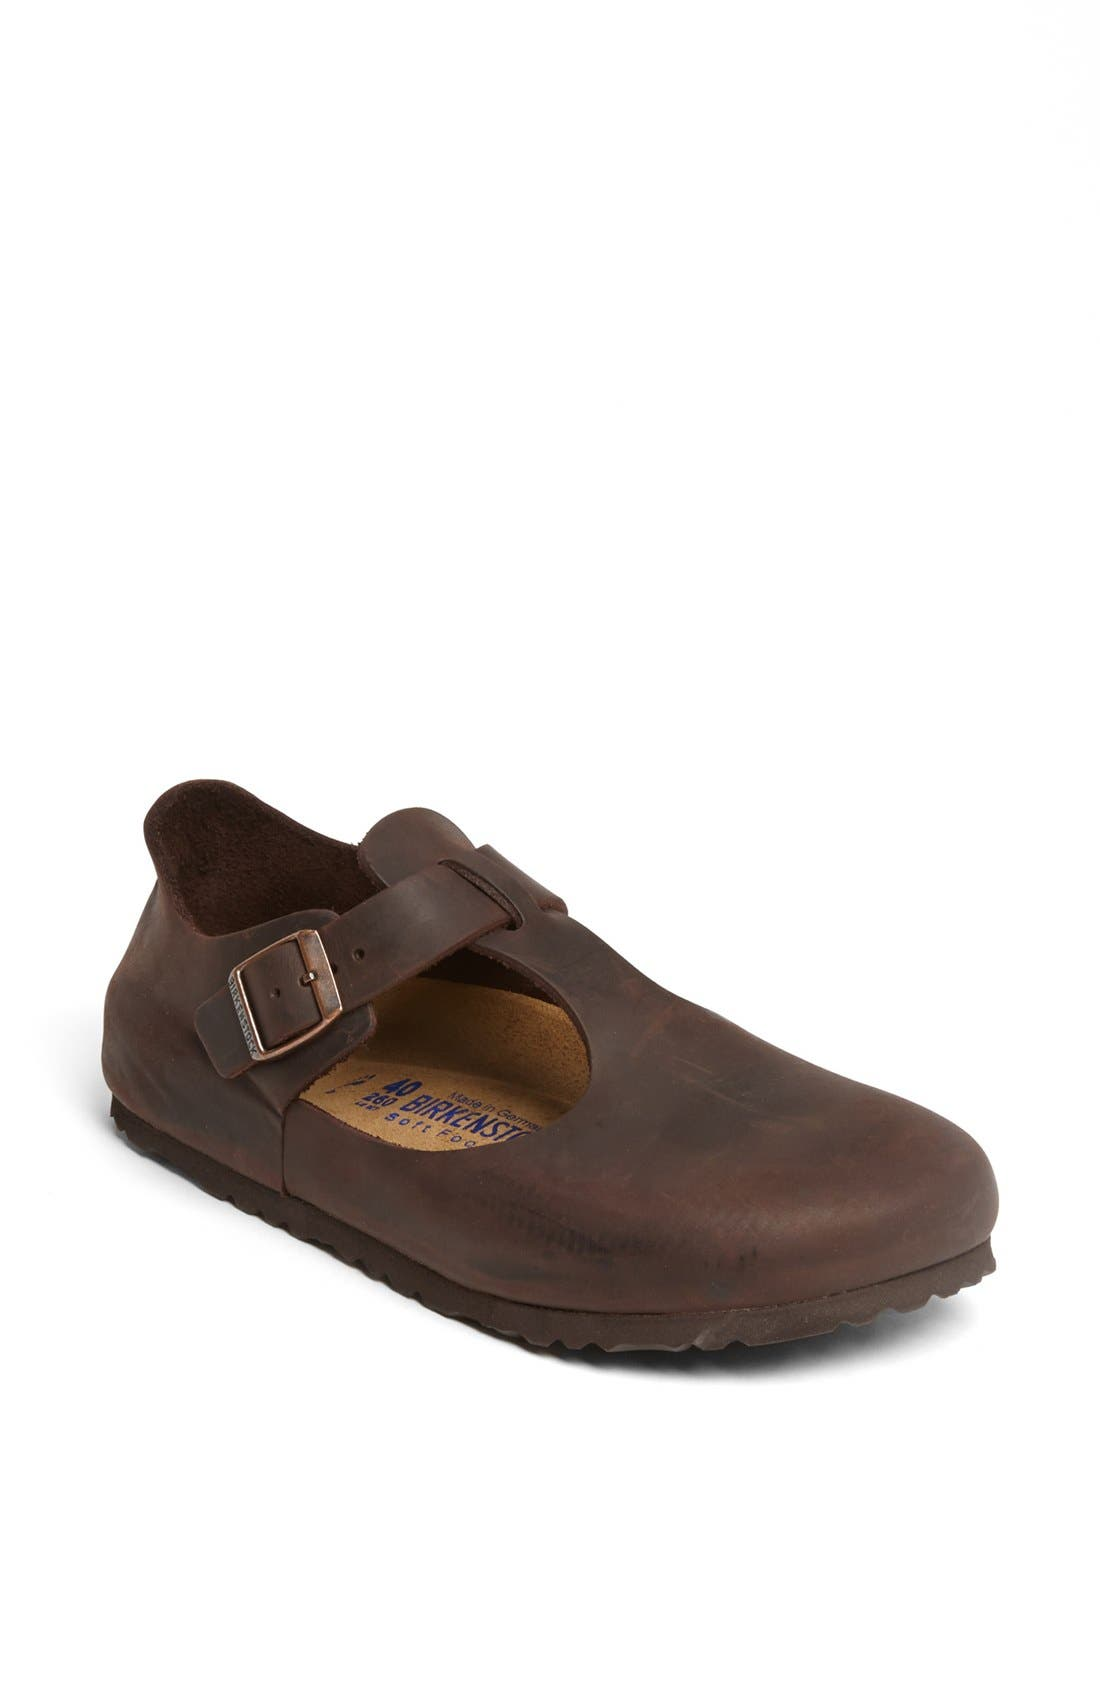 Alternate Image 1 Selected - Birkenstock 'Paris' Clog